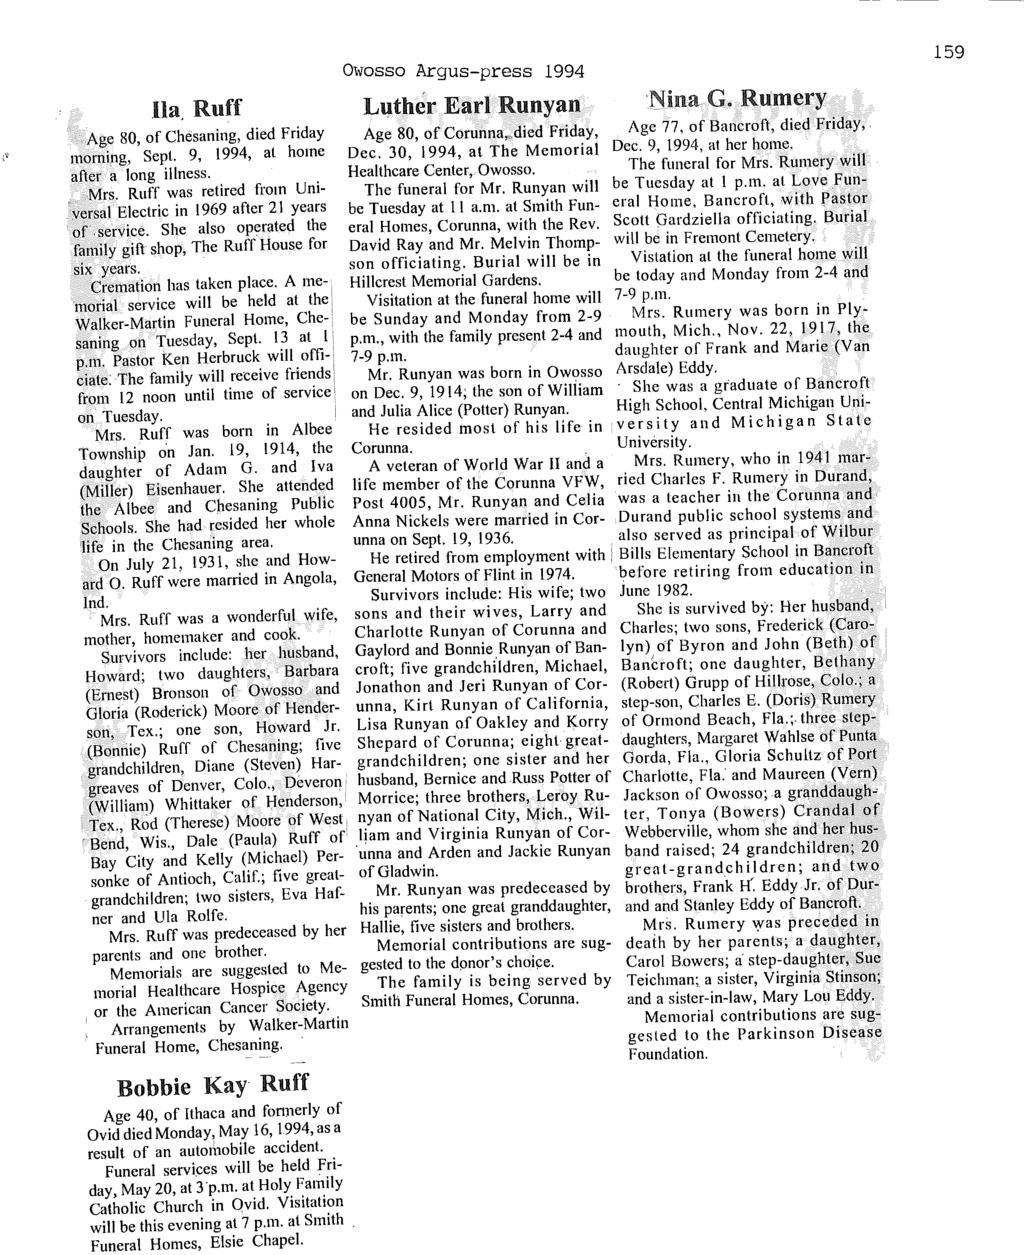 Owosso Argus-press 1994 Ua. Ruff Luther Earl Runyan 'Nina G. Rumery.. Age 80, of Chesaning, died Friday morning, Sept. 9, 1994, at home after a long illness. Mrs. Ruff was retired from Uni.